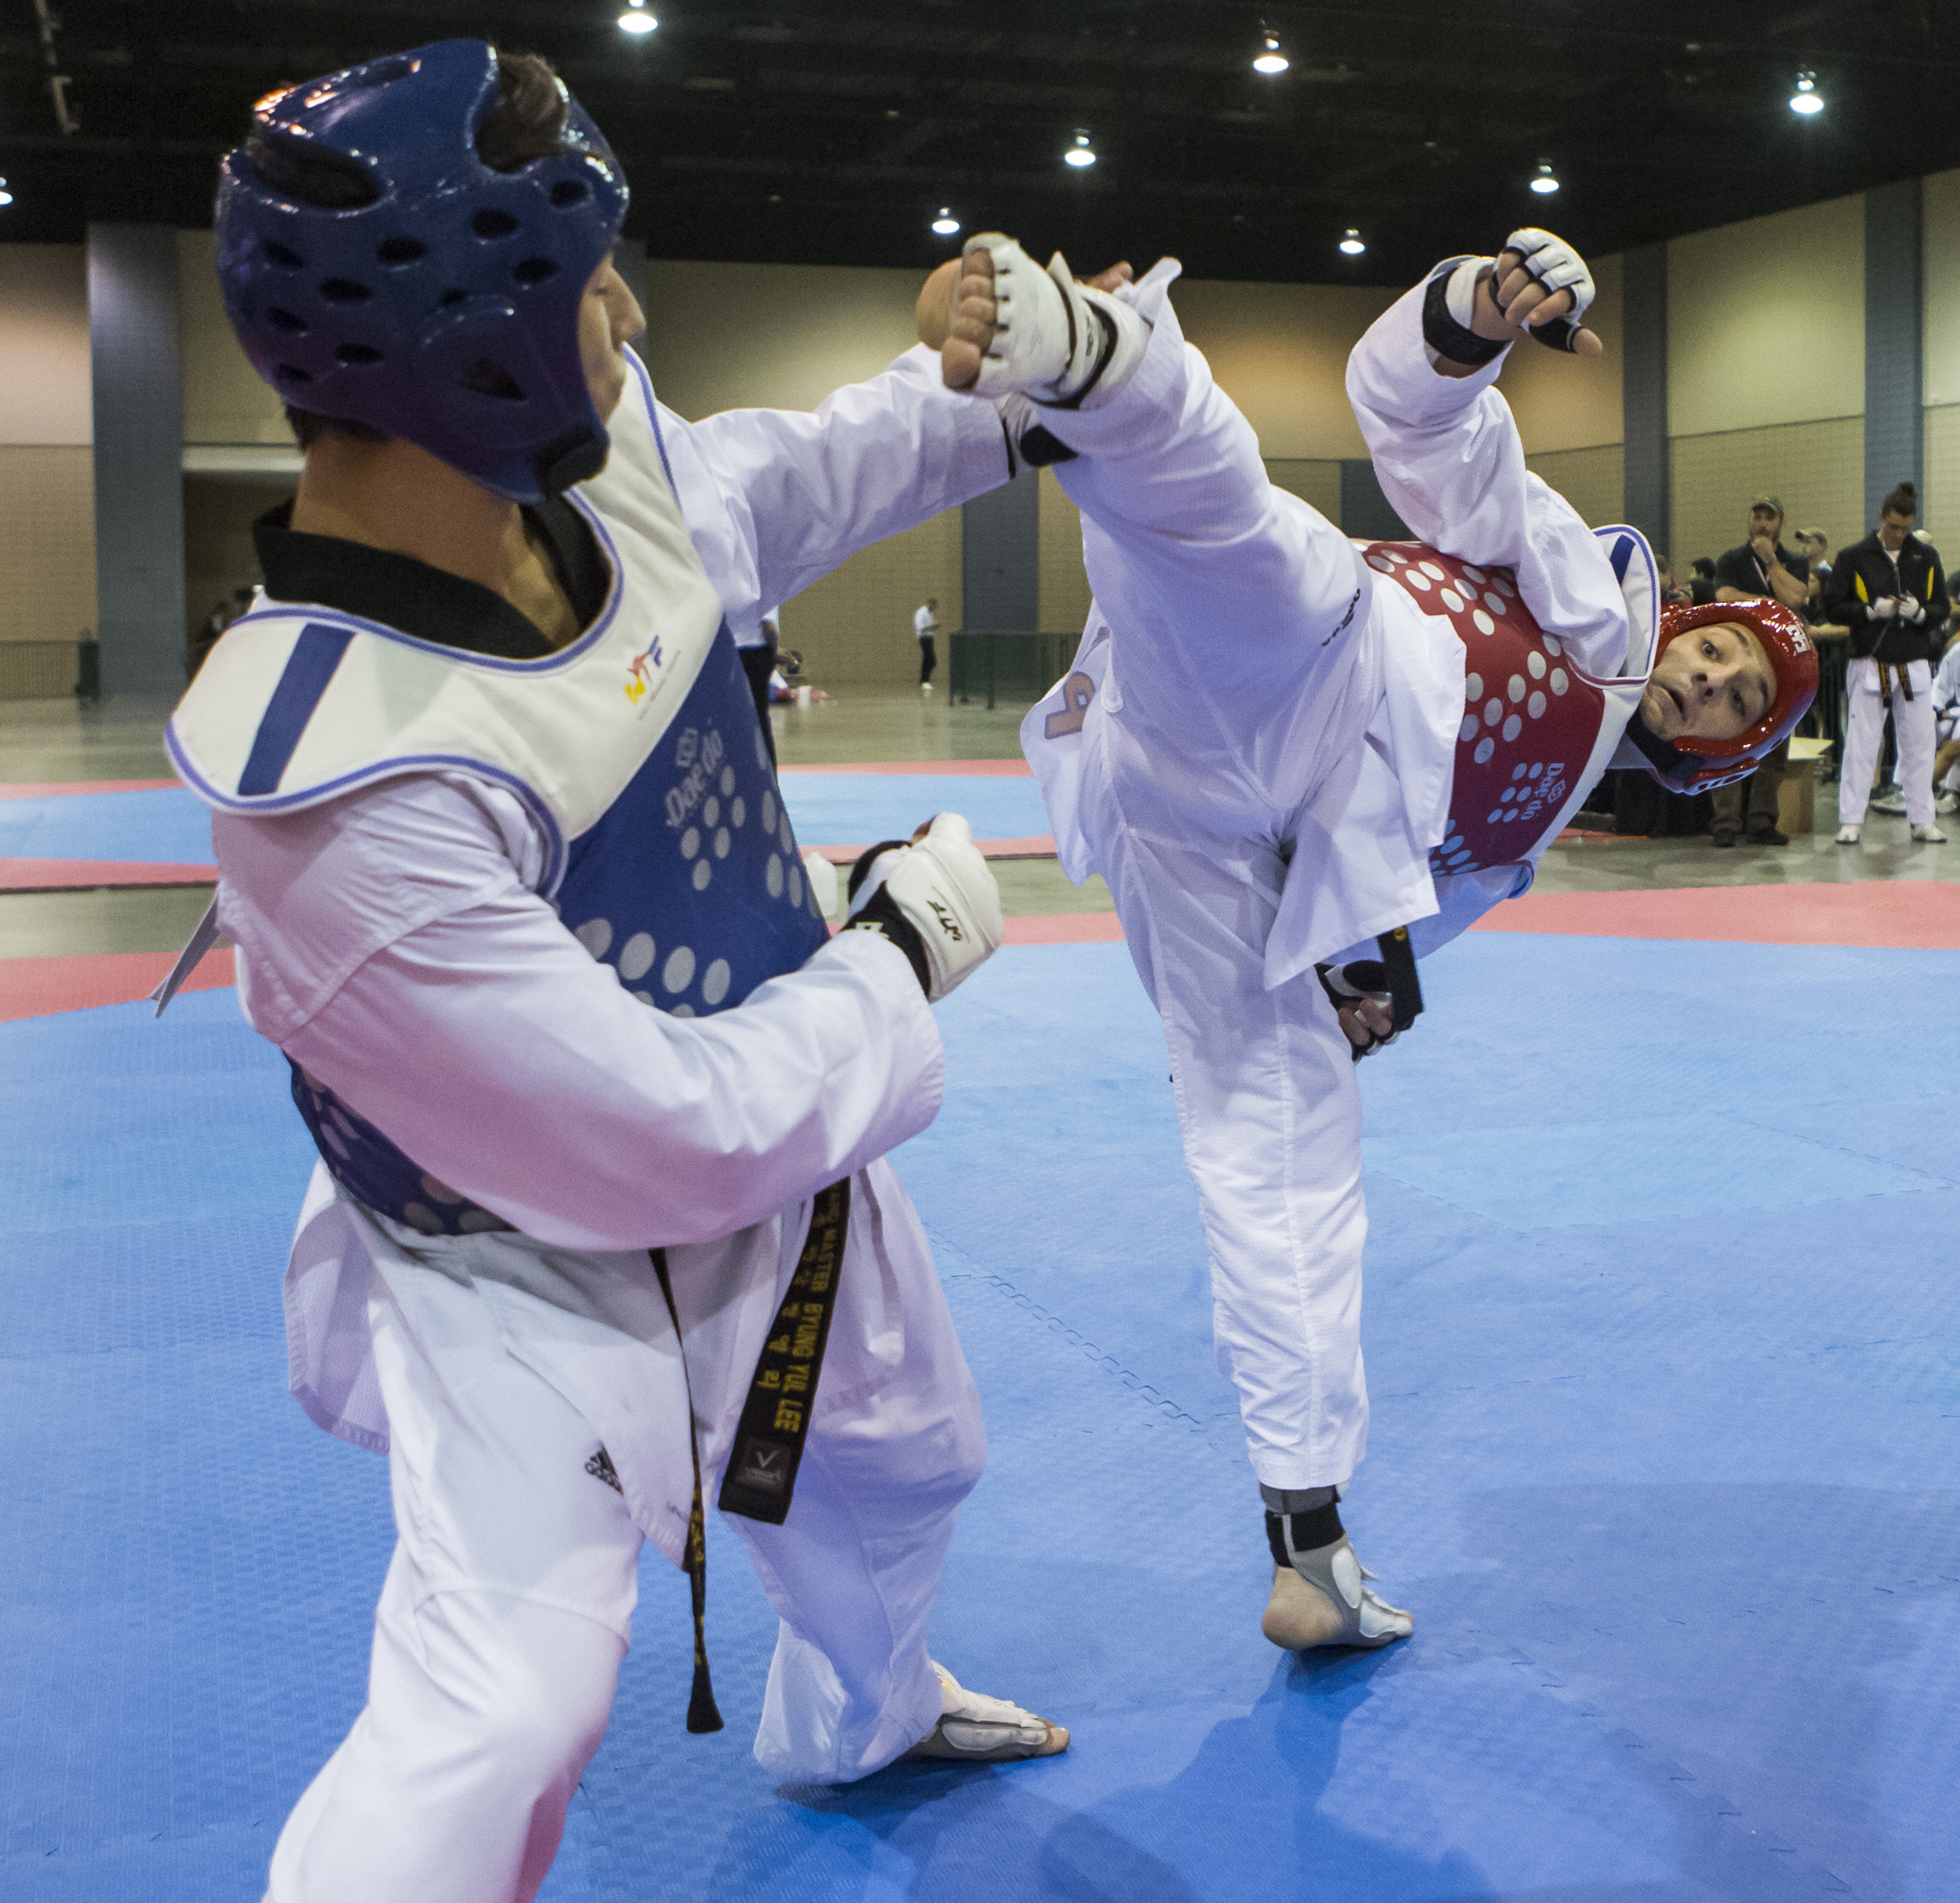 Travis Wissbroecke dodges a high kick from Matt Gallagher during a sparring match as part of the USA Taekwondo National Championships held at the Greater Richmond Convention Center in Richmond, Va. on Thursday, July 7, 2016.